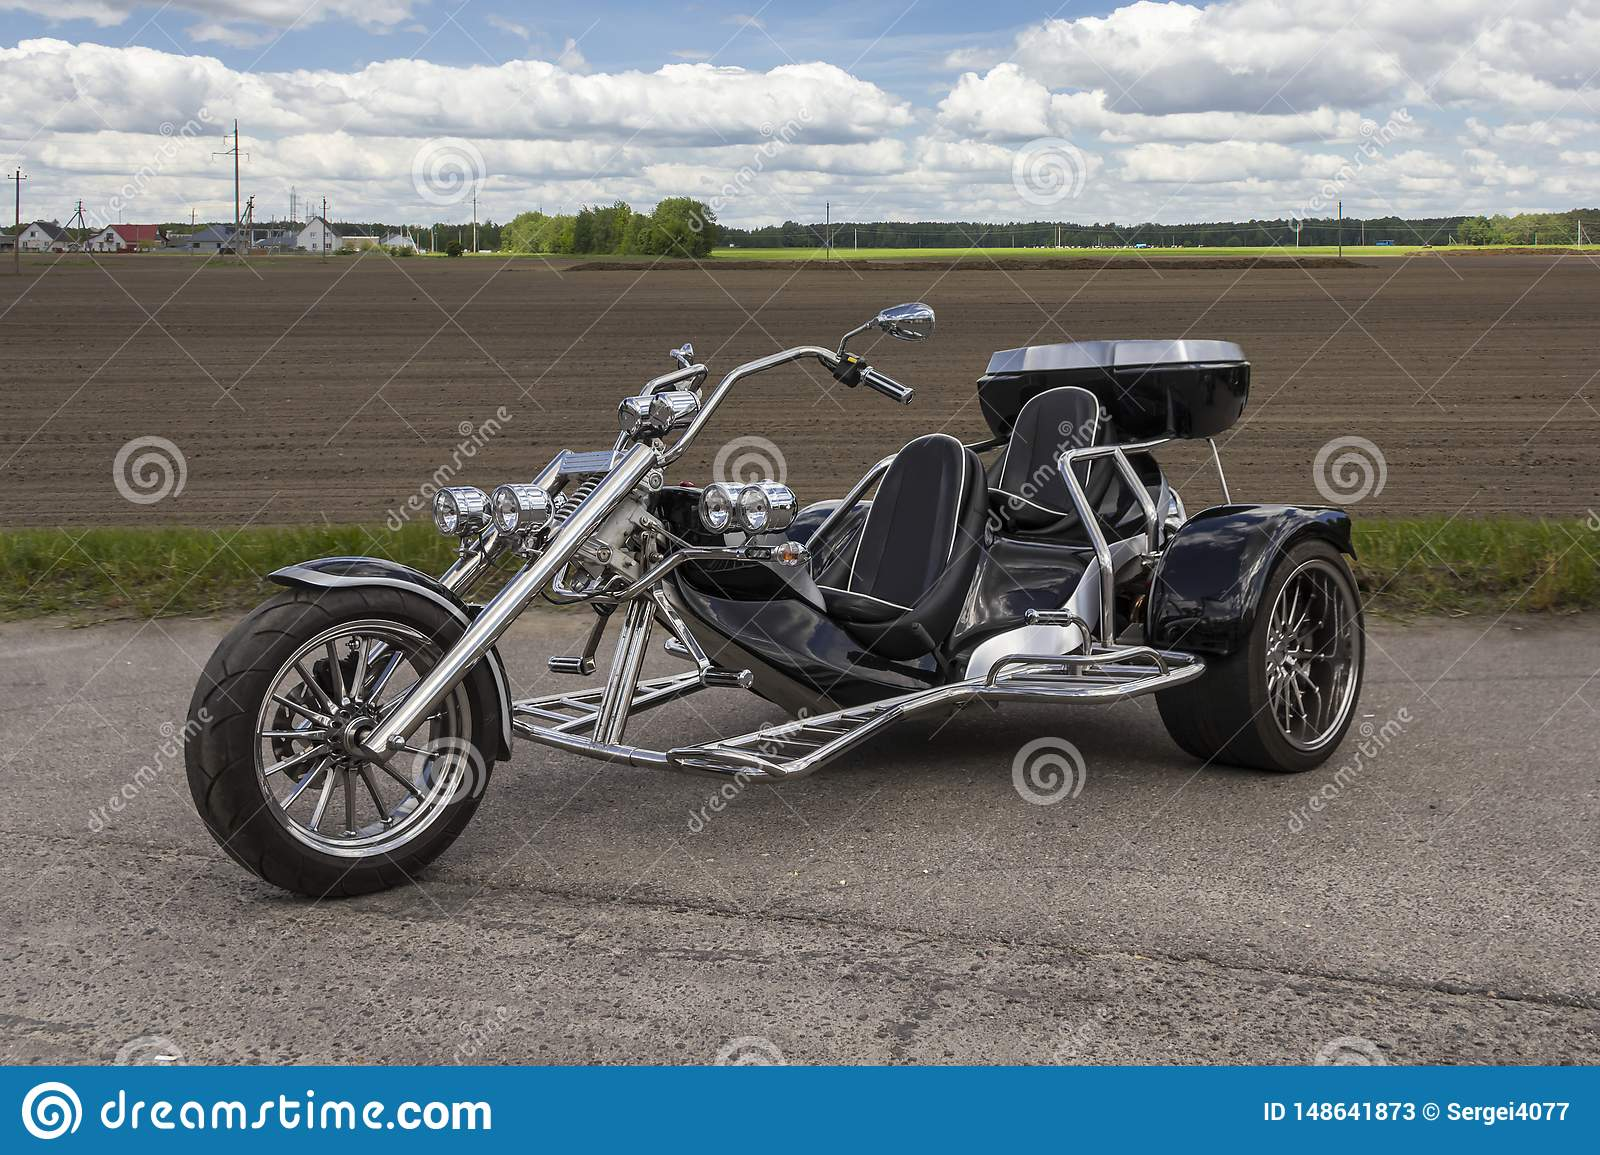 Three-wheeled motorcycle stands in the parking lot near the field